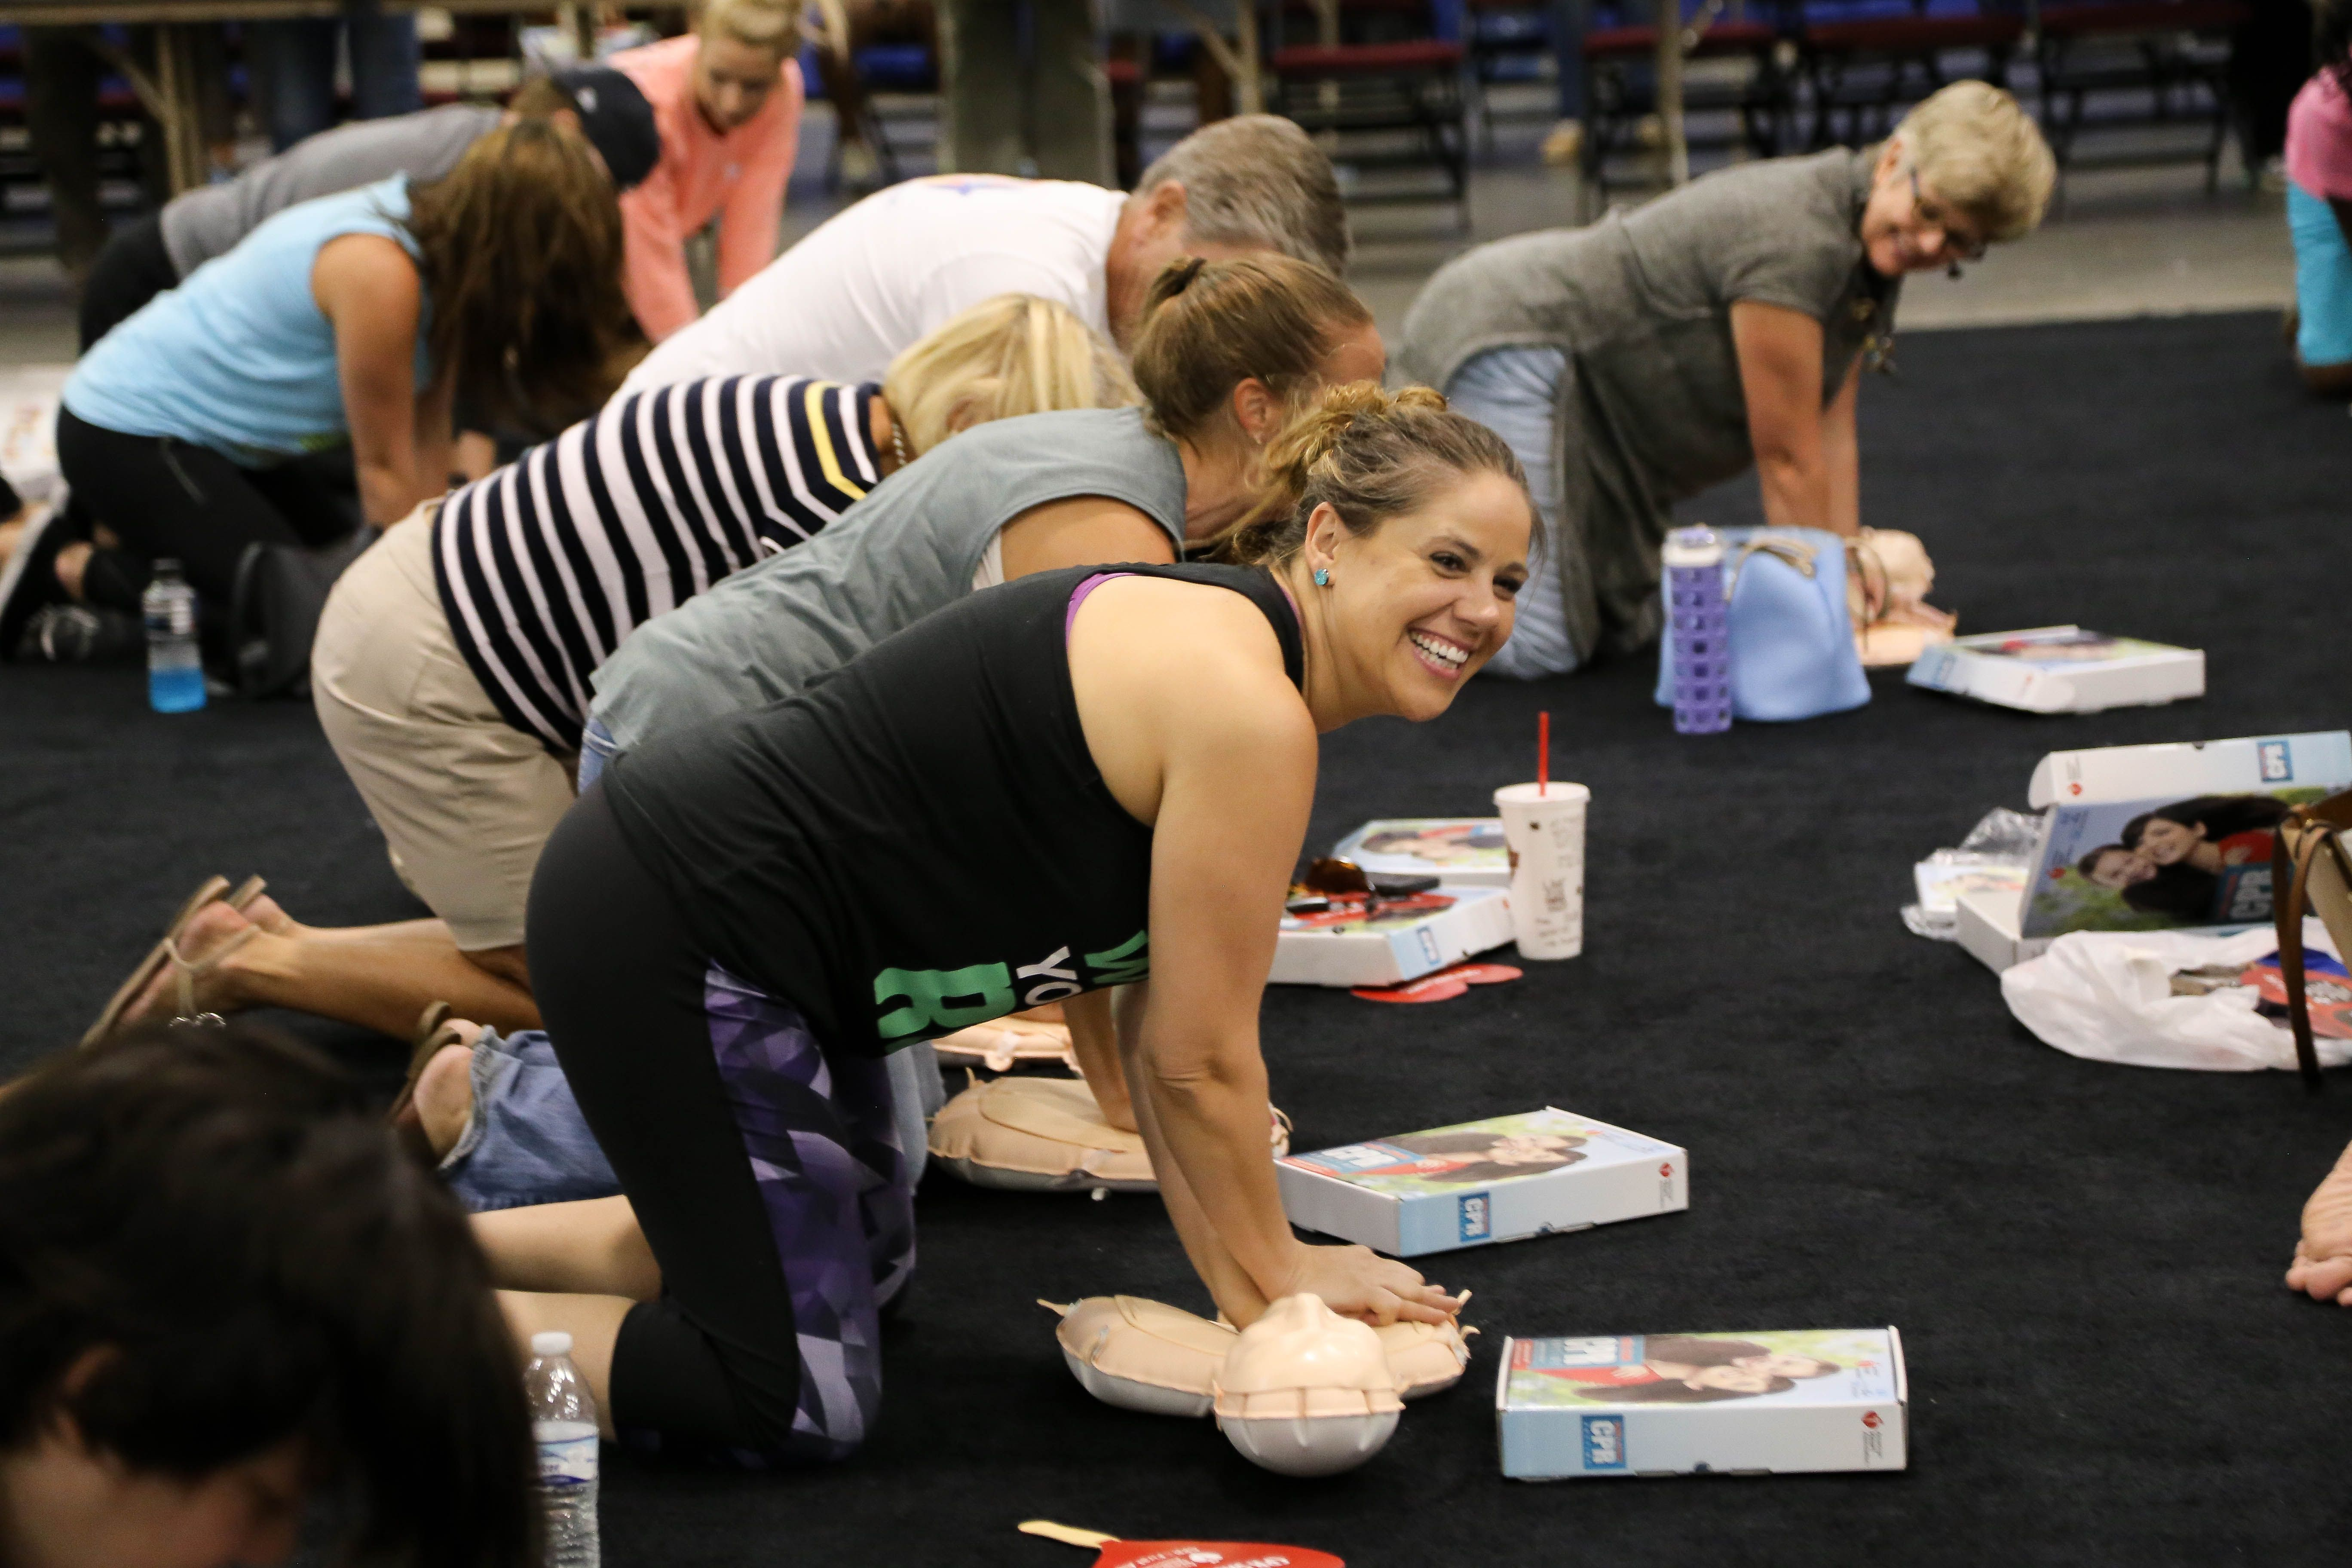 Citizens getting free CPR training as apart of our Citizen